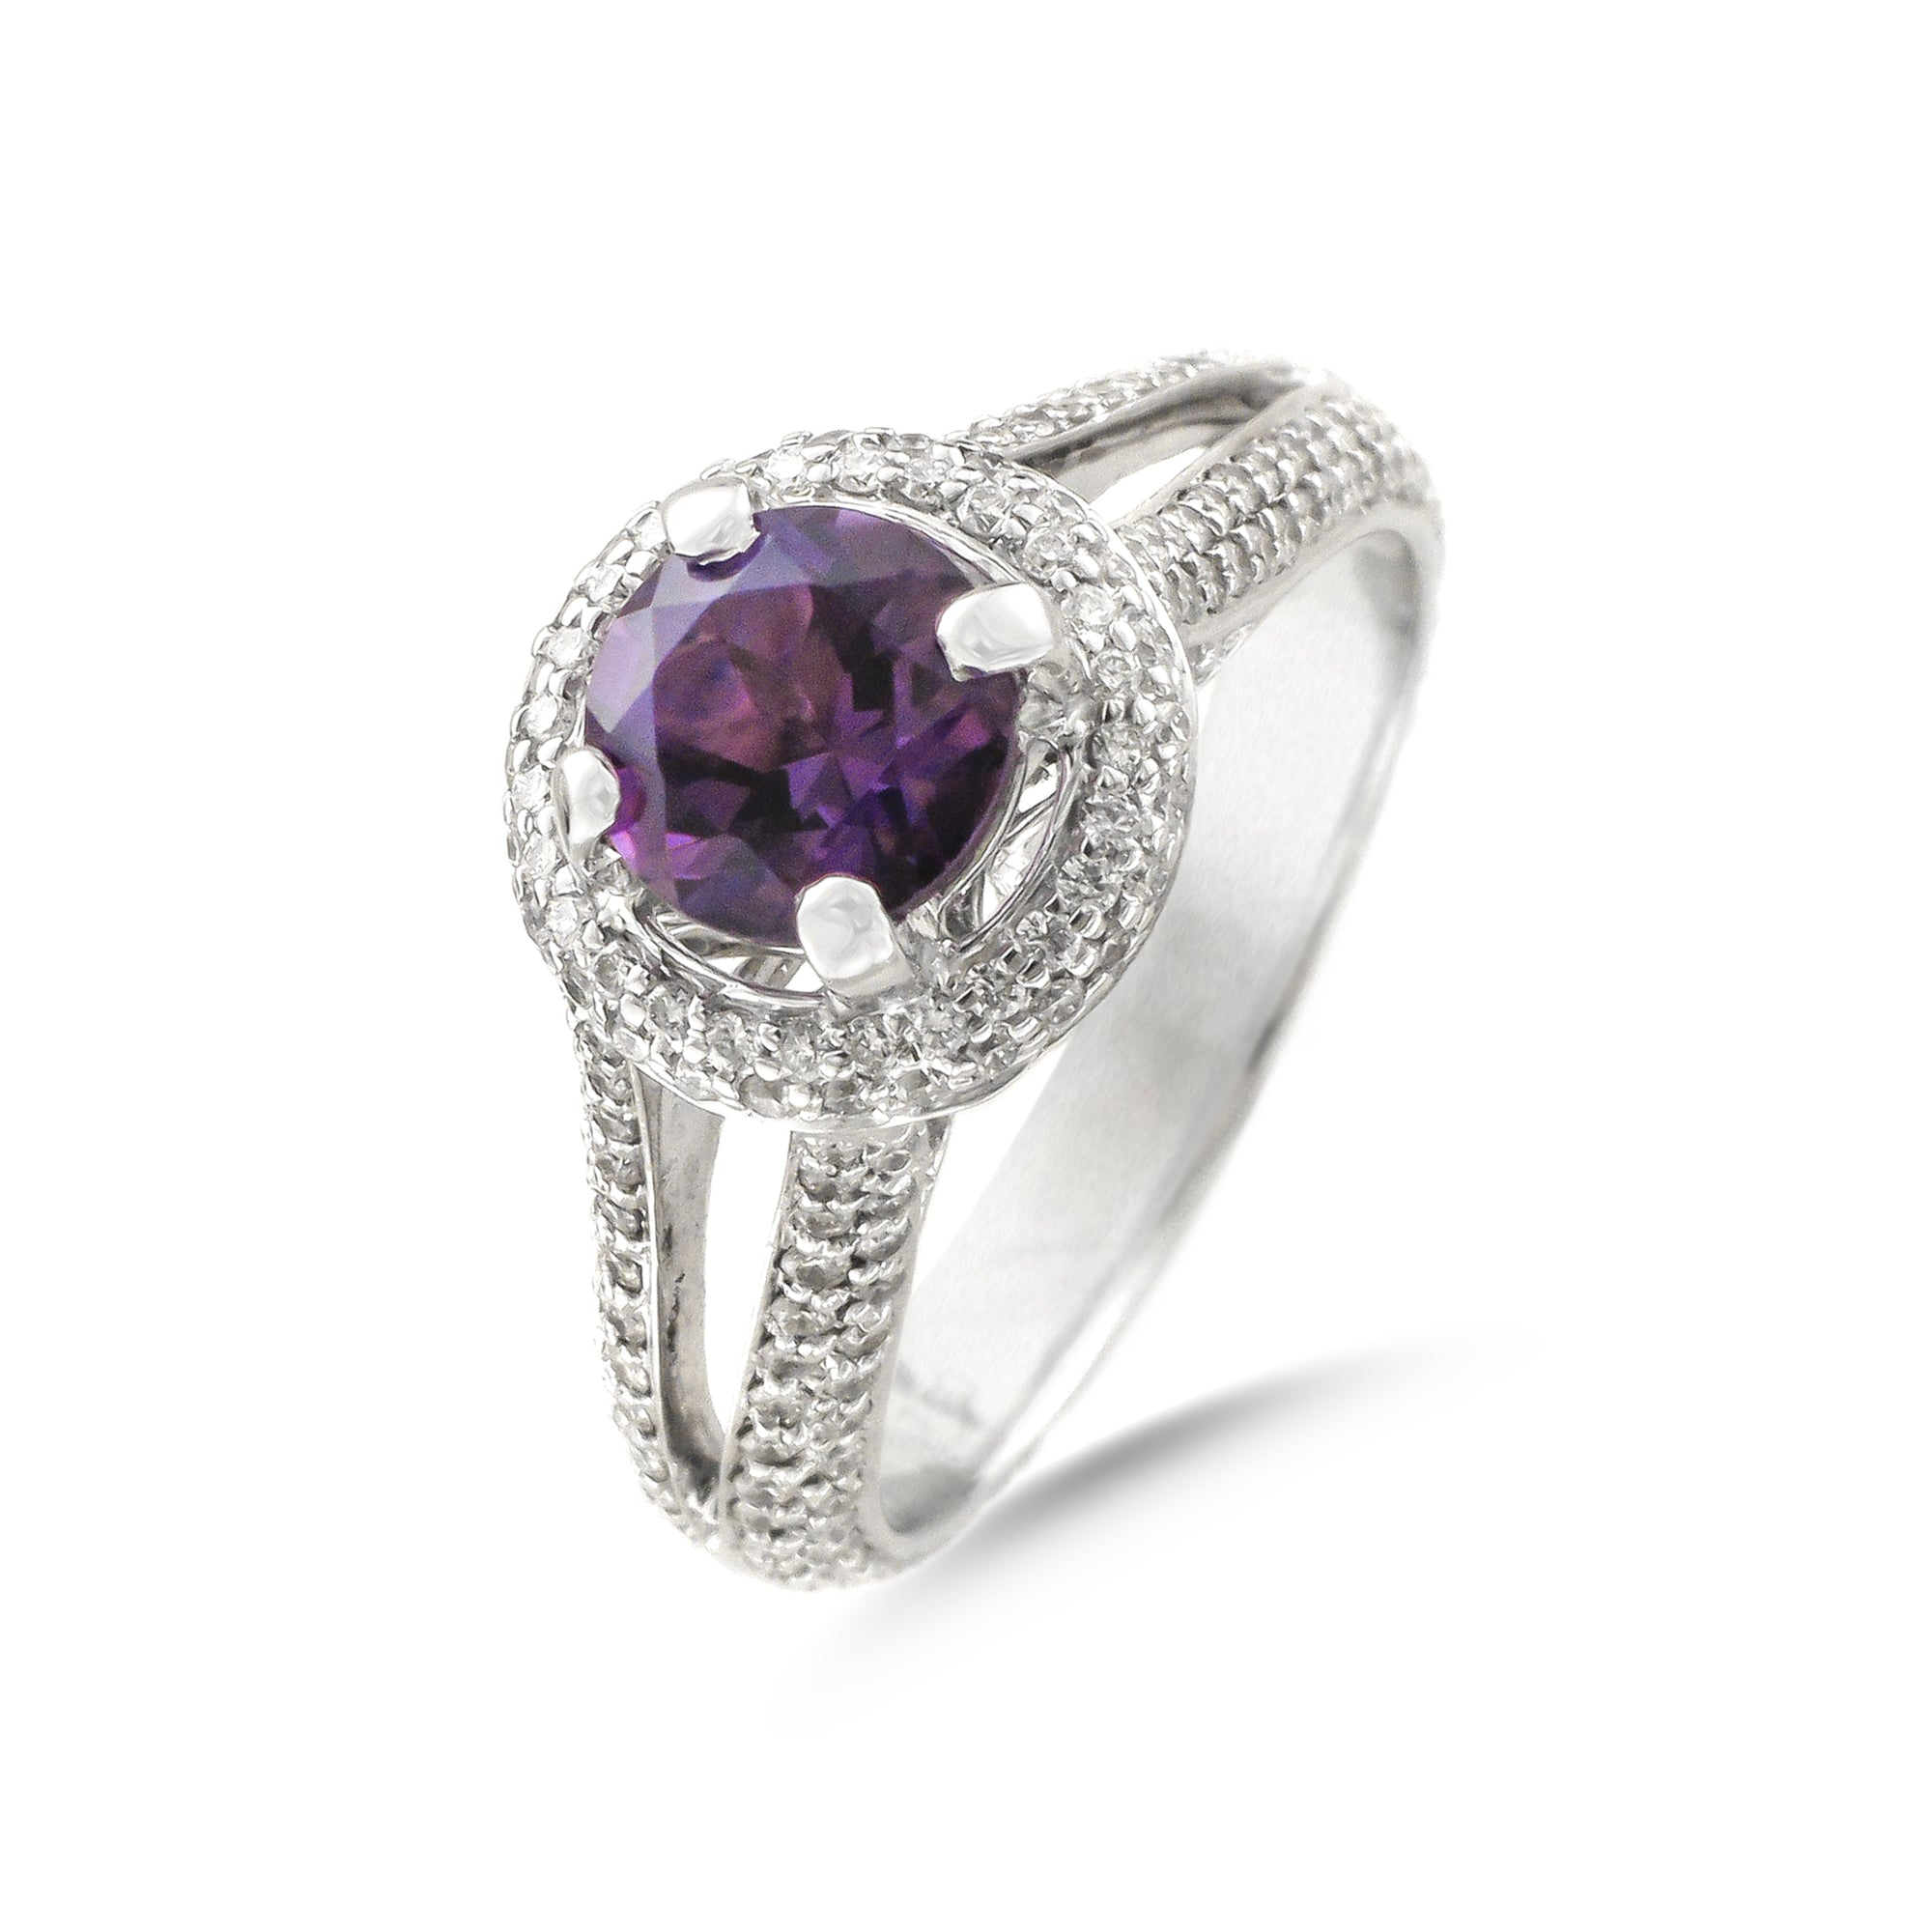 Vintage 18ct White Gold Amethyst and Diamond Ring